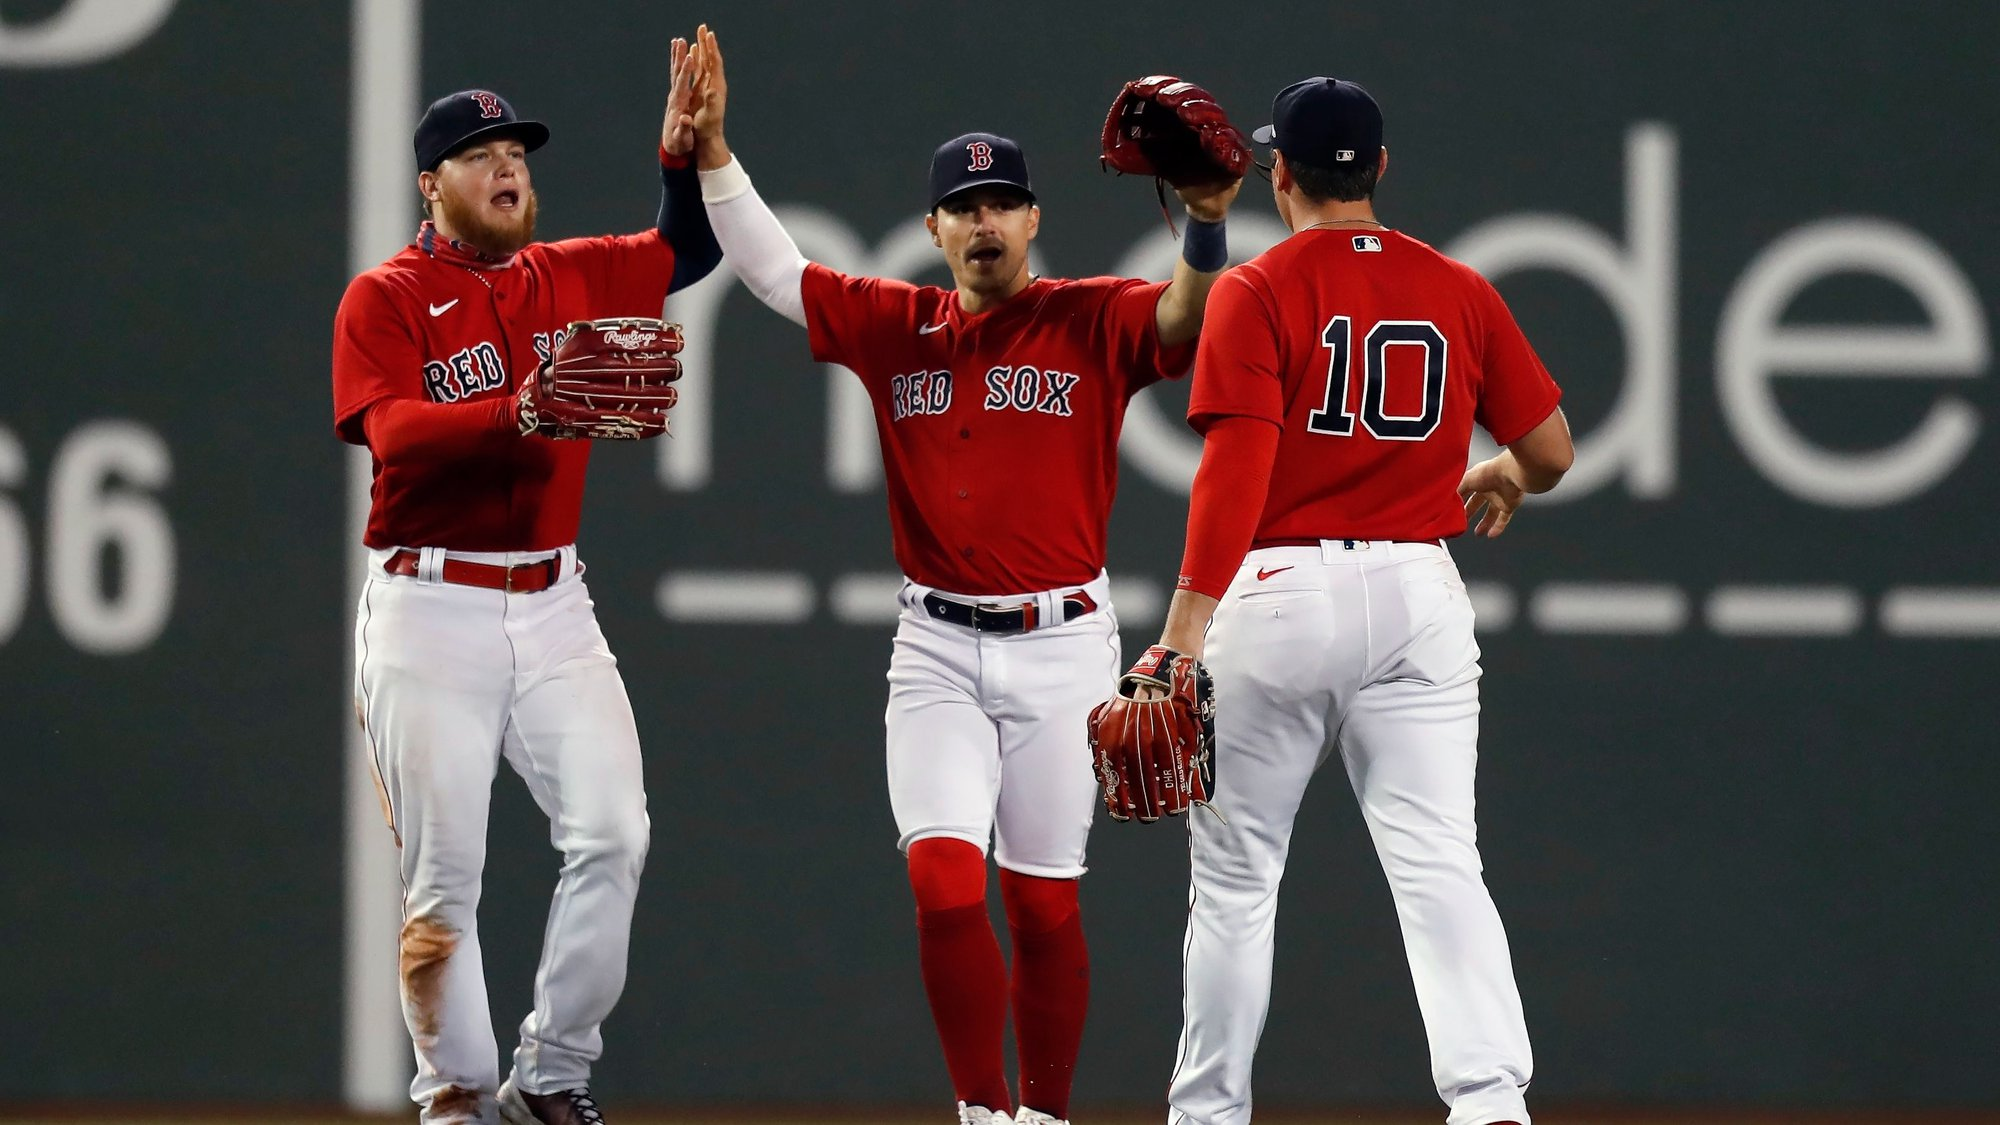 Boston Red Sox vs. Los Angeles Angels Preview (July 5): All-Stars and Mega Star on Display in L.A.